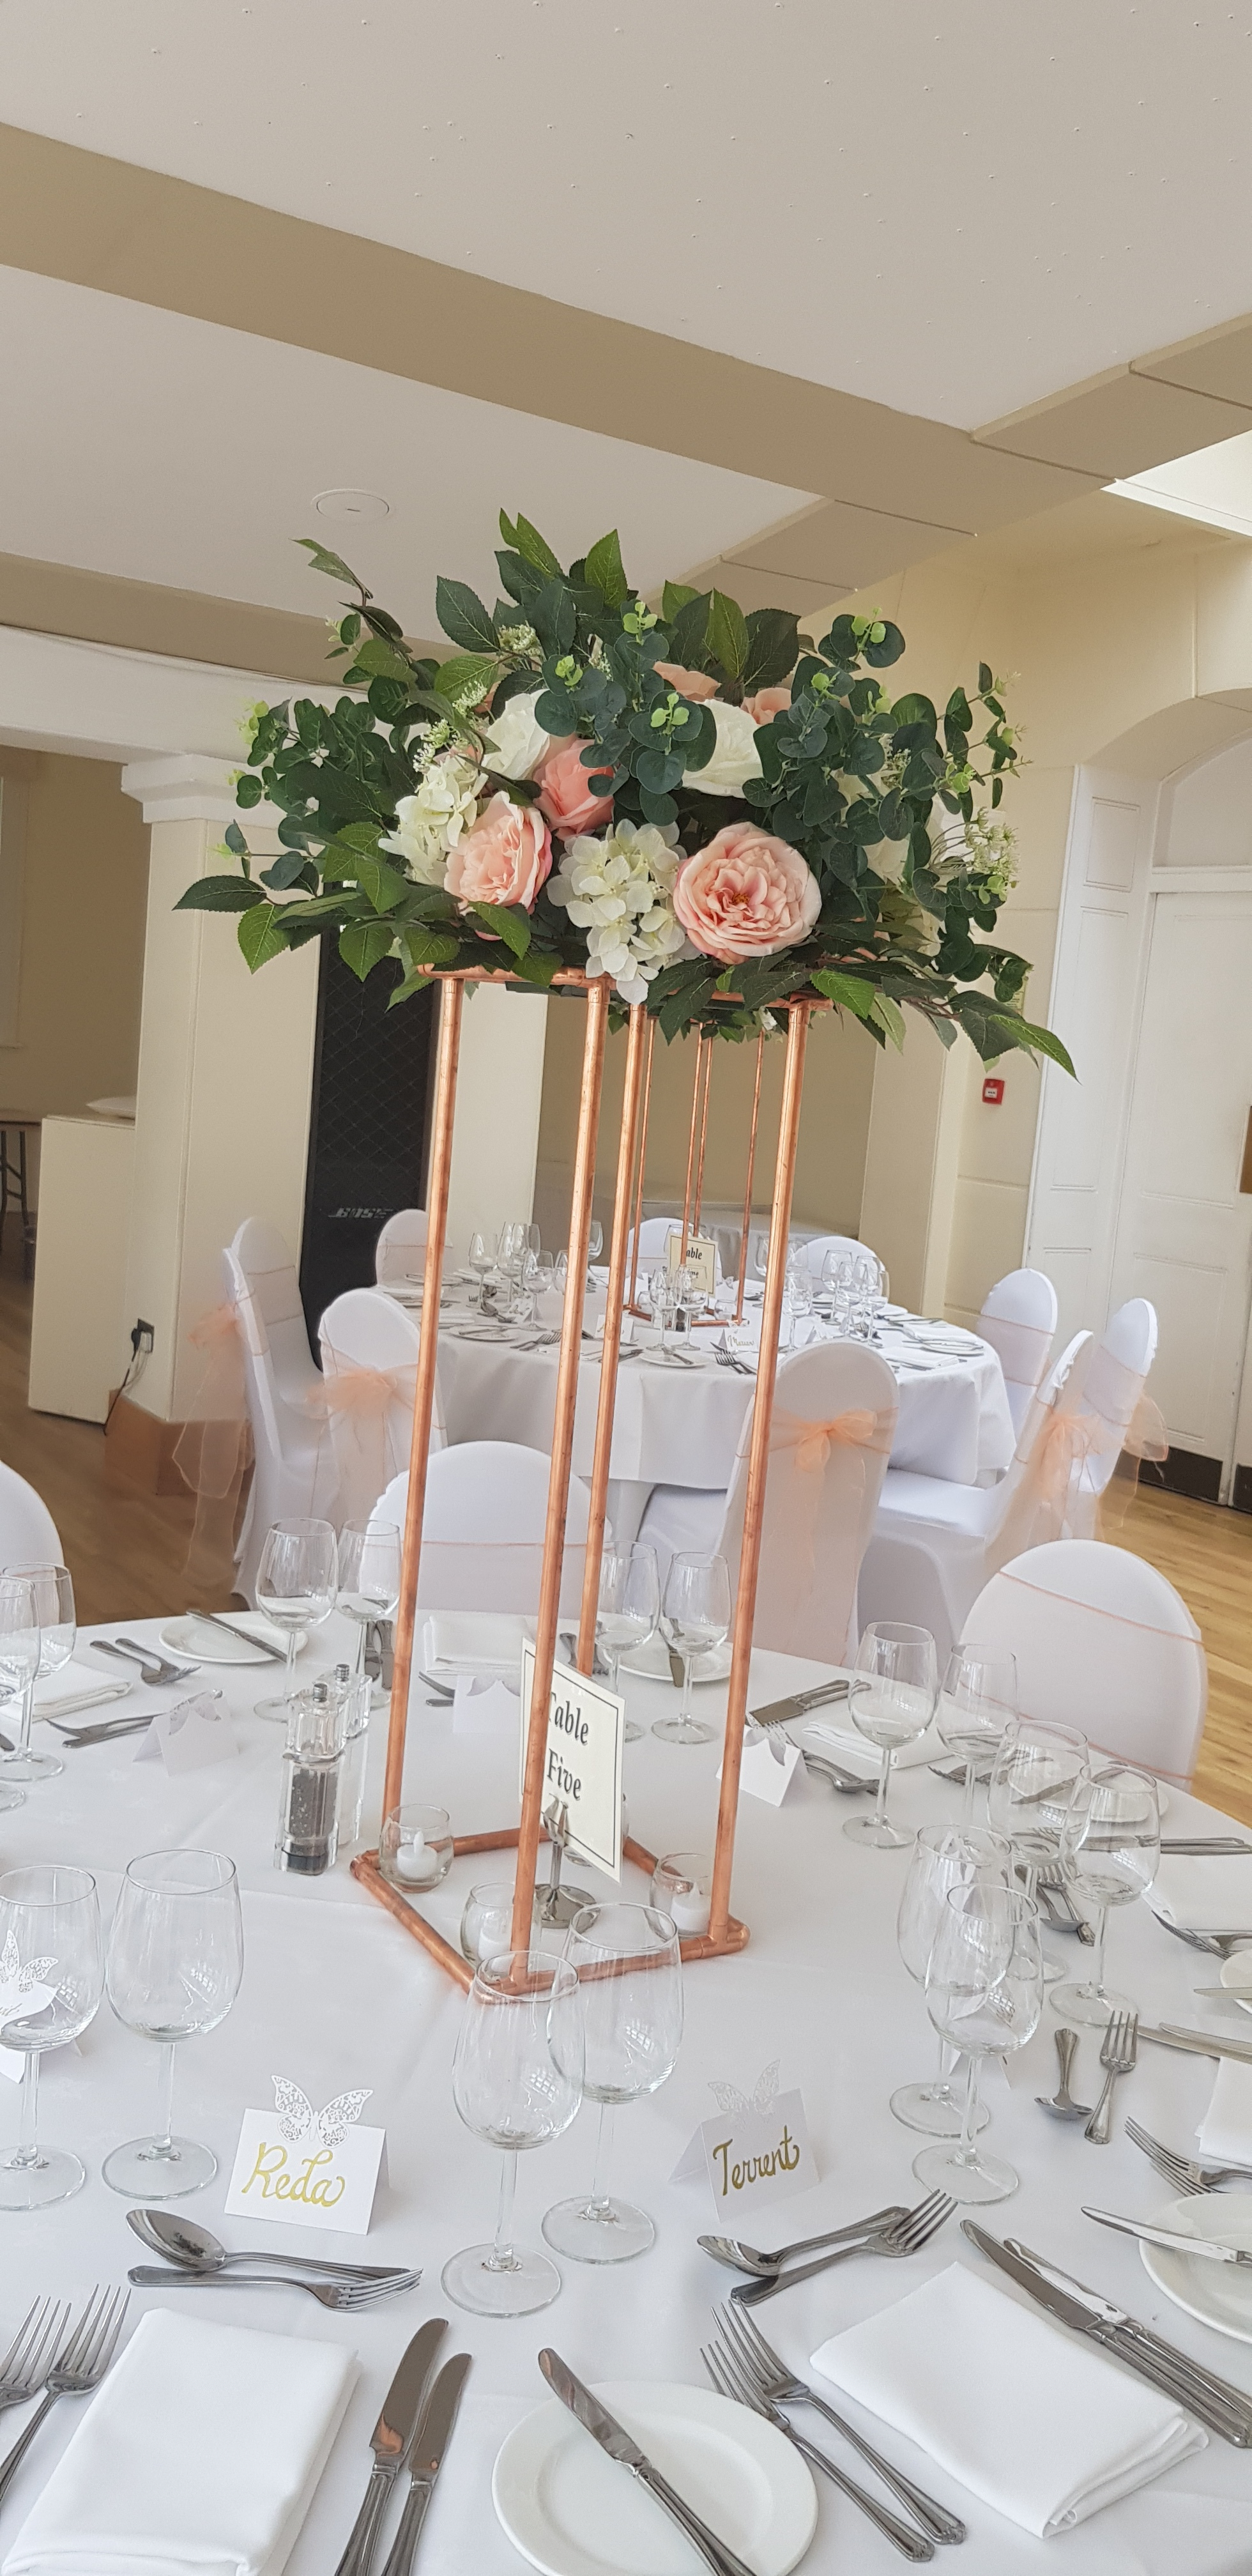 Copper plinth centrepiece - Our NEW copper plinth stands are bang on trend for this season and can be used for table centrepieces and aisle decoration. Teamed with our beautiful silk flower arrangements and hanging LED candlelit baubles, these are truly a must have for your upcoming wedding or event.Size of plinth 80cm high x 25cm wide x 25cm deep